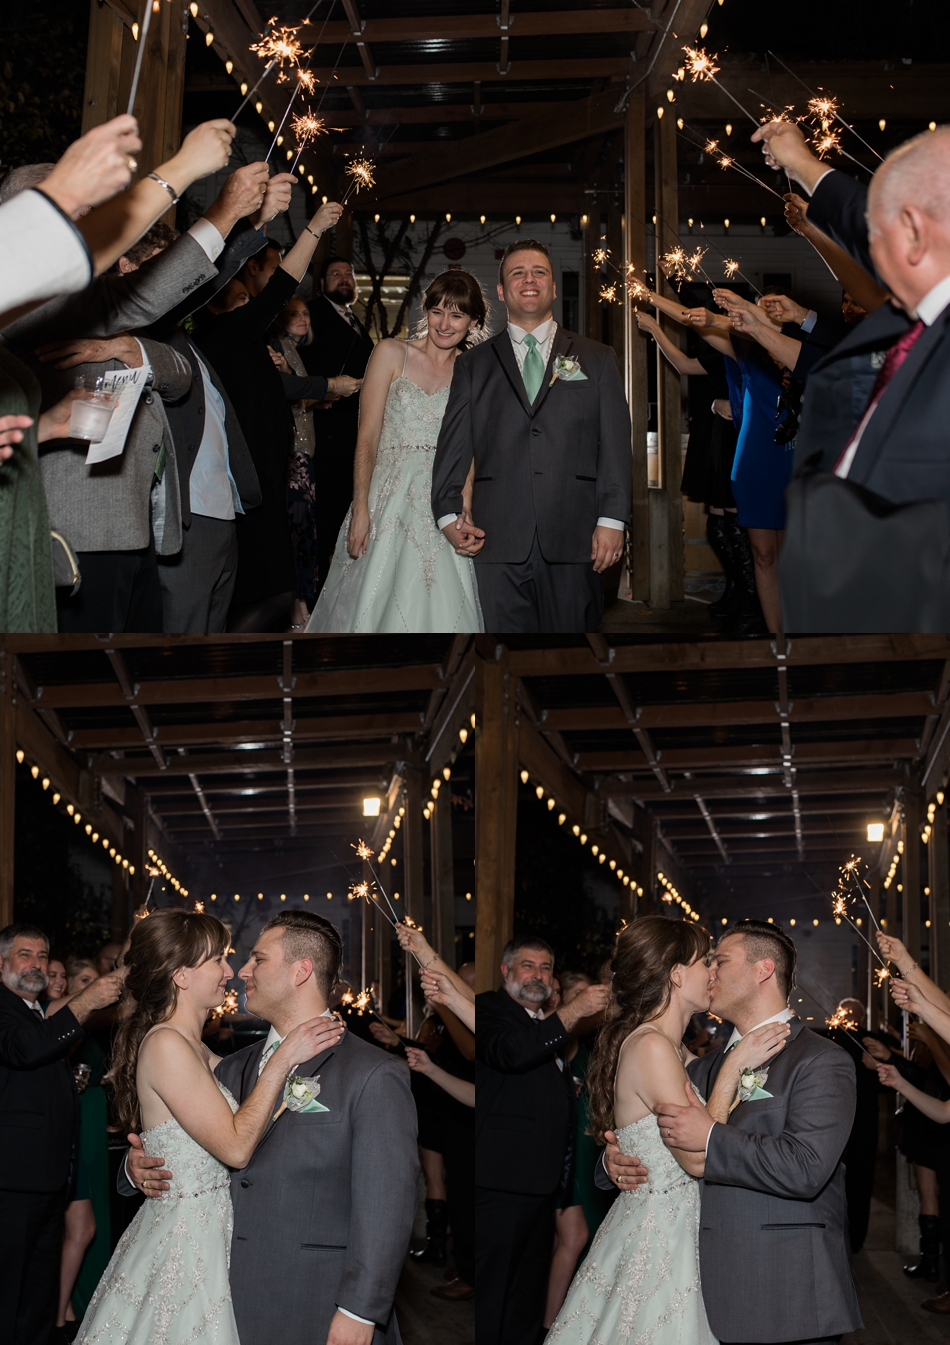 A photo of bride and groom during their sparkler send-off after their fall wedding at the Loft at Russell's in Bothell, a wedding venue near Seattle. | Joanna Monger Photography | Snohomish & Seattle Wedding Photographer